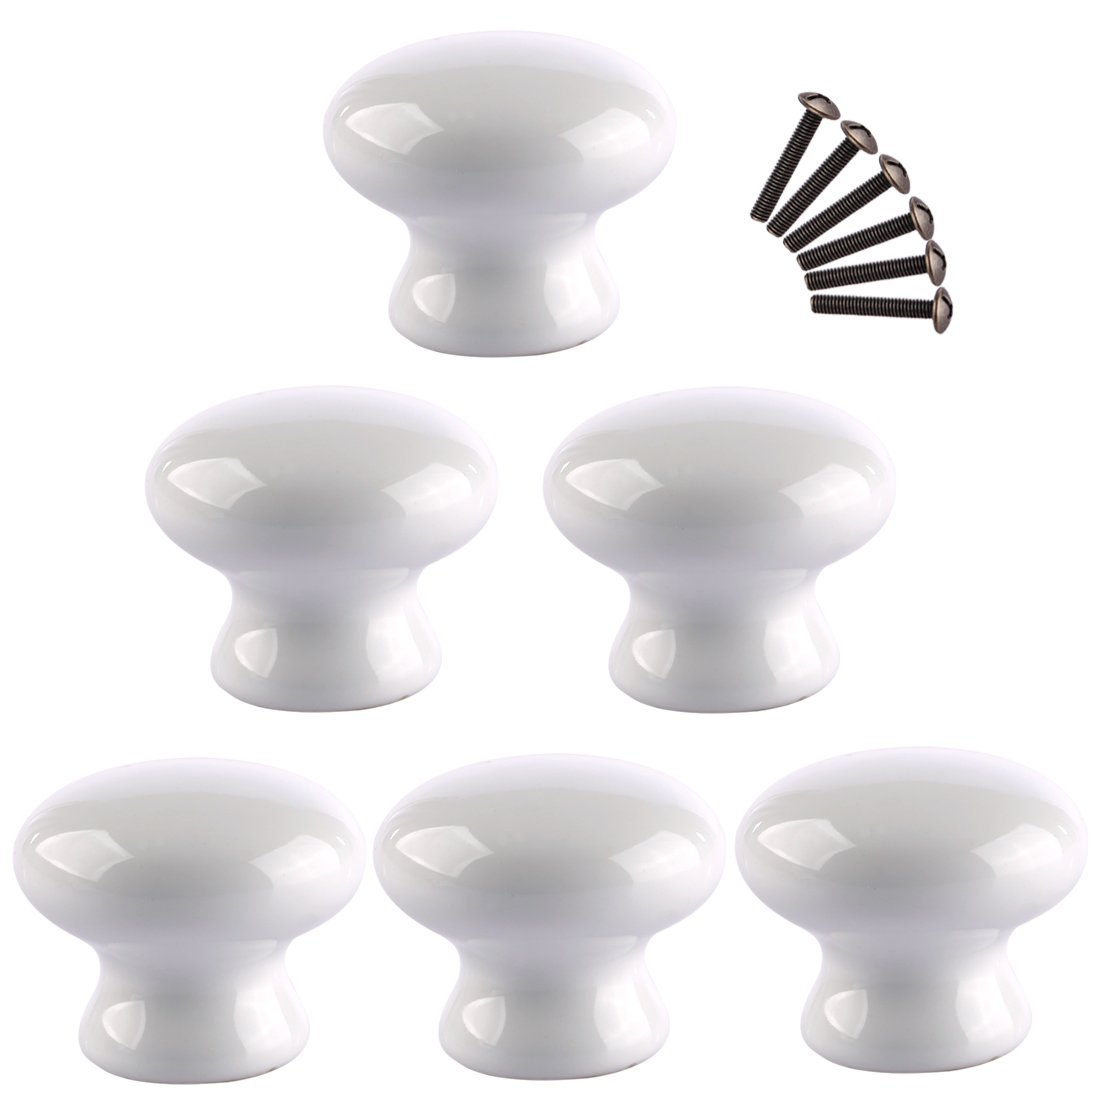 XSHION Cabinet Knobs,6 Pack Ceramics Door Knob Furniture Handle Drawer Cupboard Kitchen Handle Pulls for Living Room Bedroom(White)